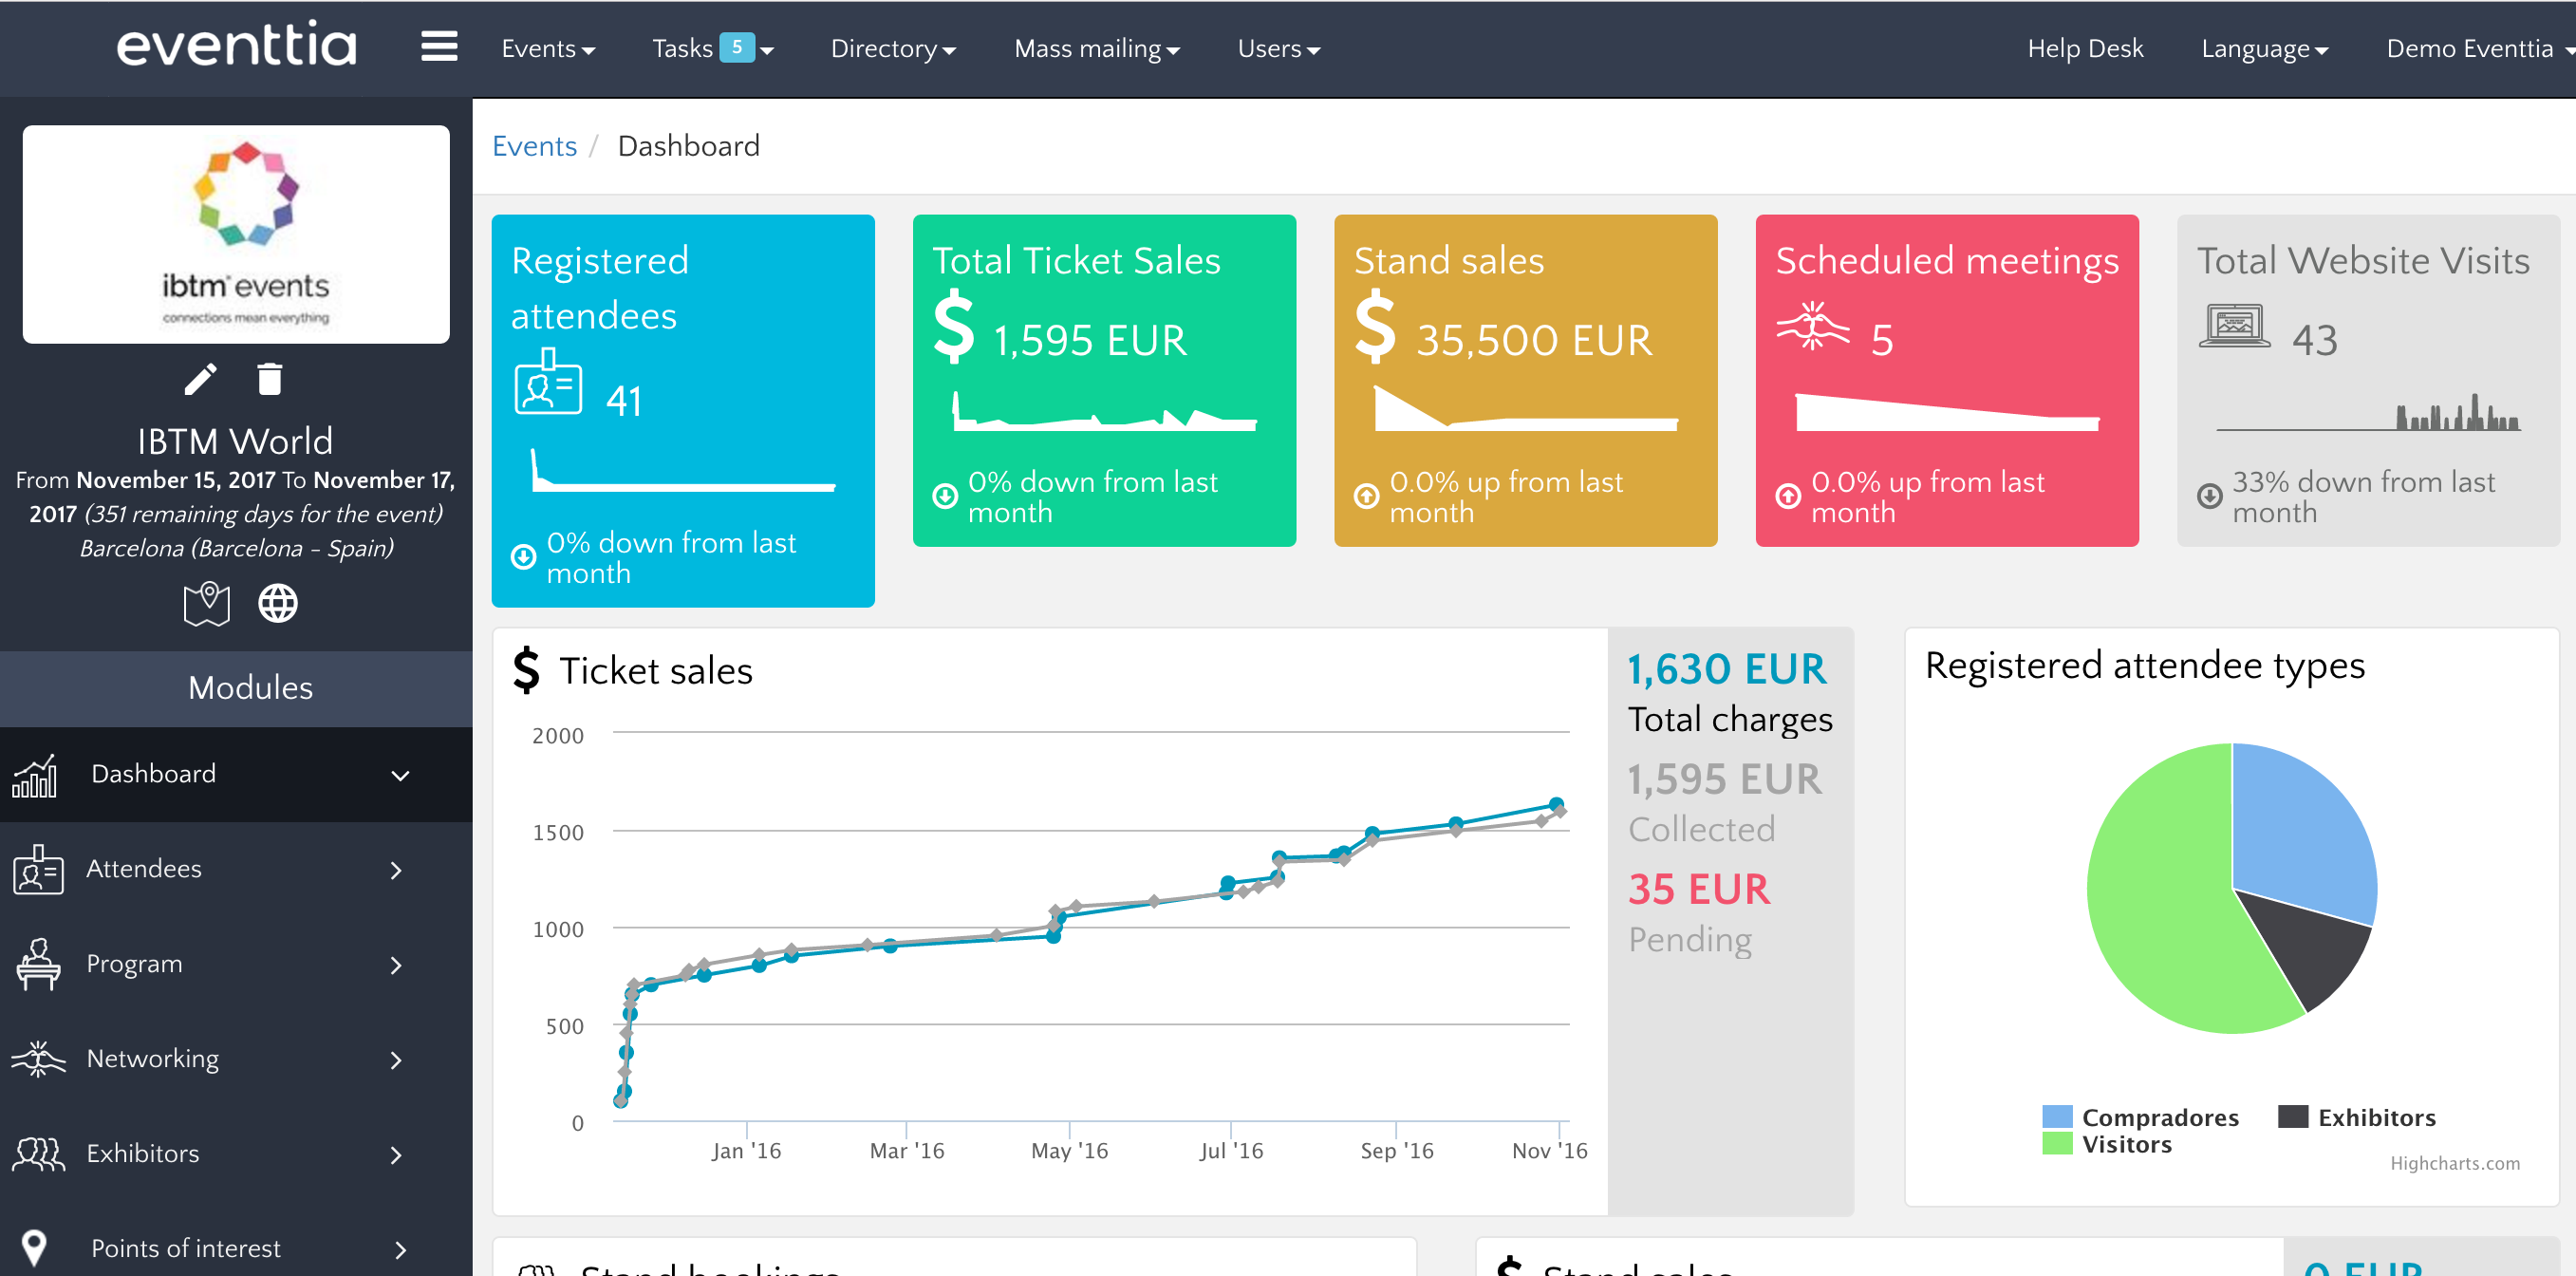 Eventtia dashboard